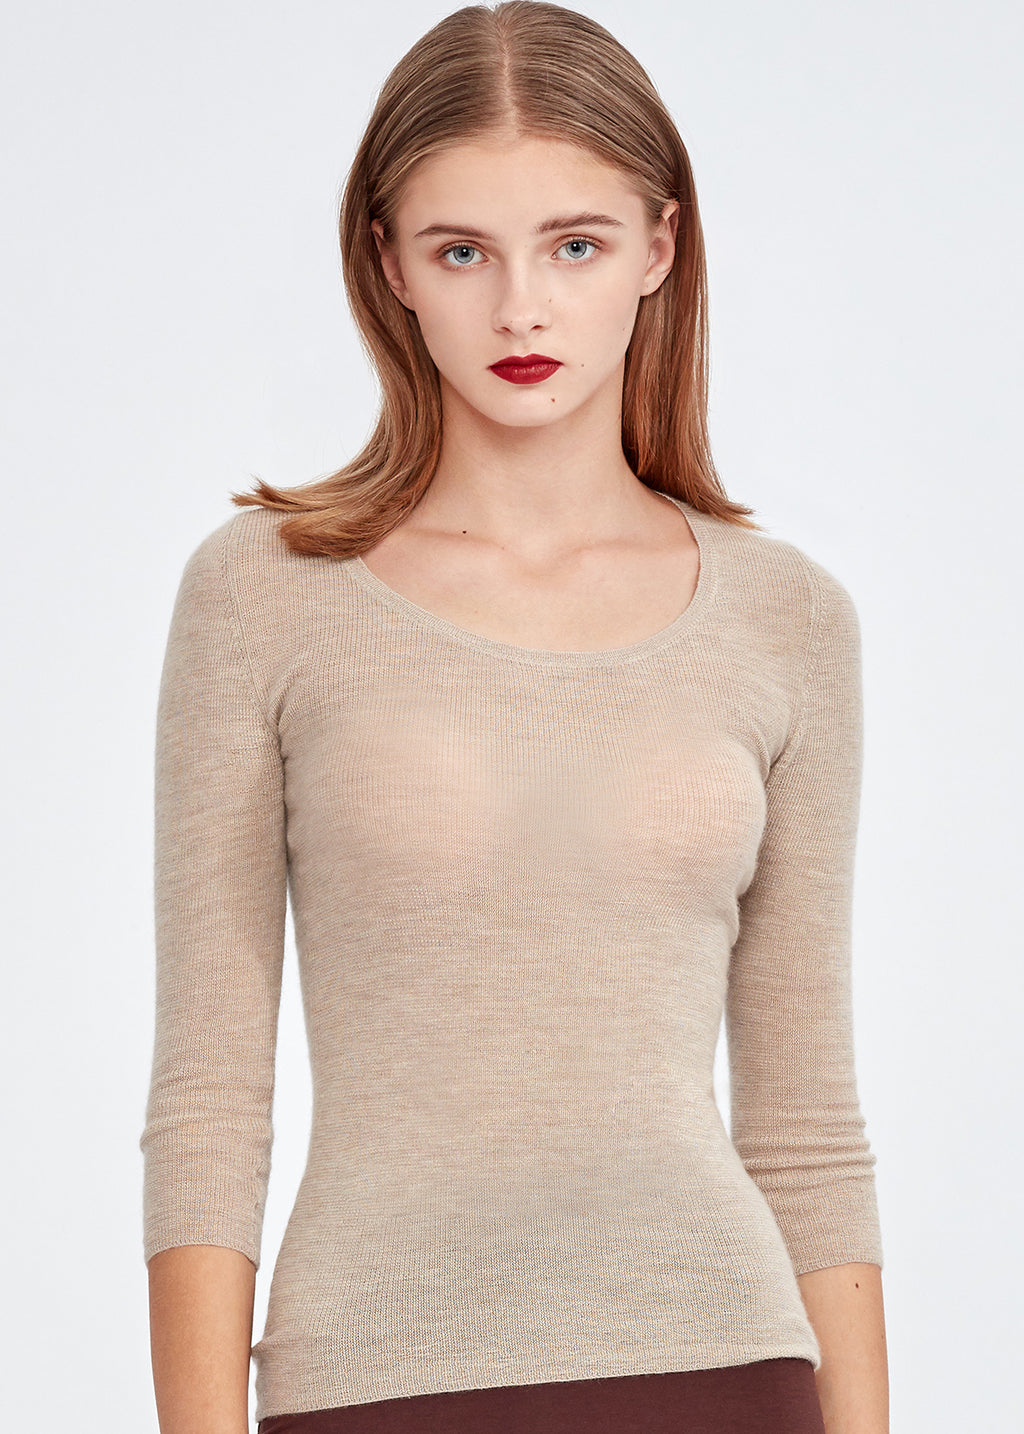 U-neck 3/4 Sleeve Cashmere Top